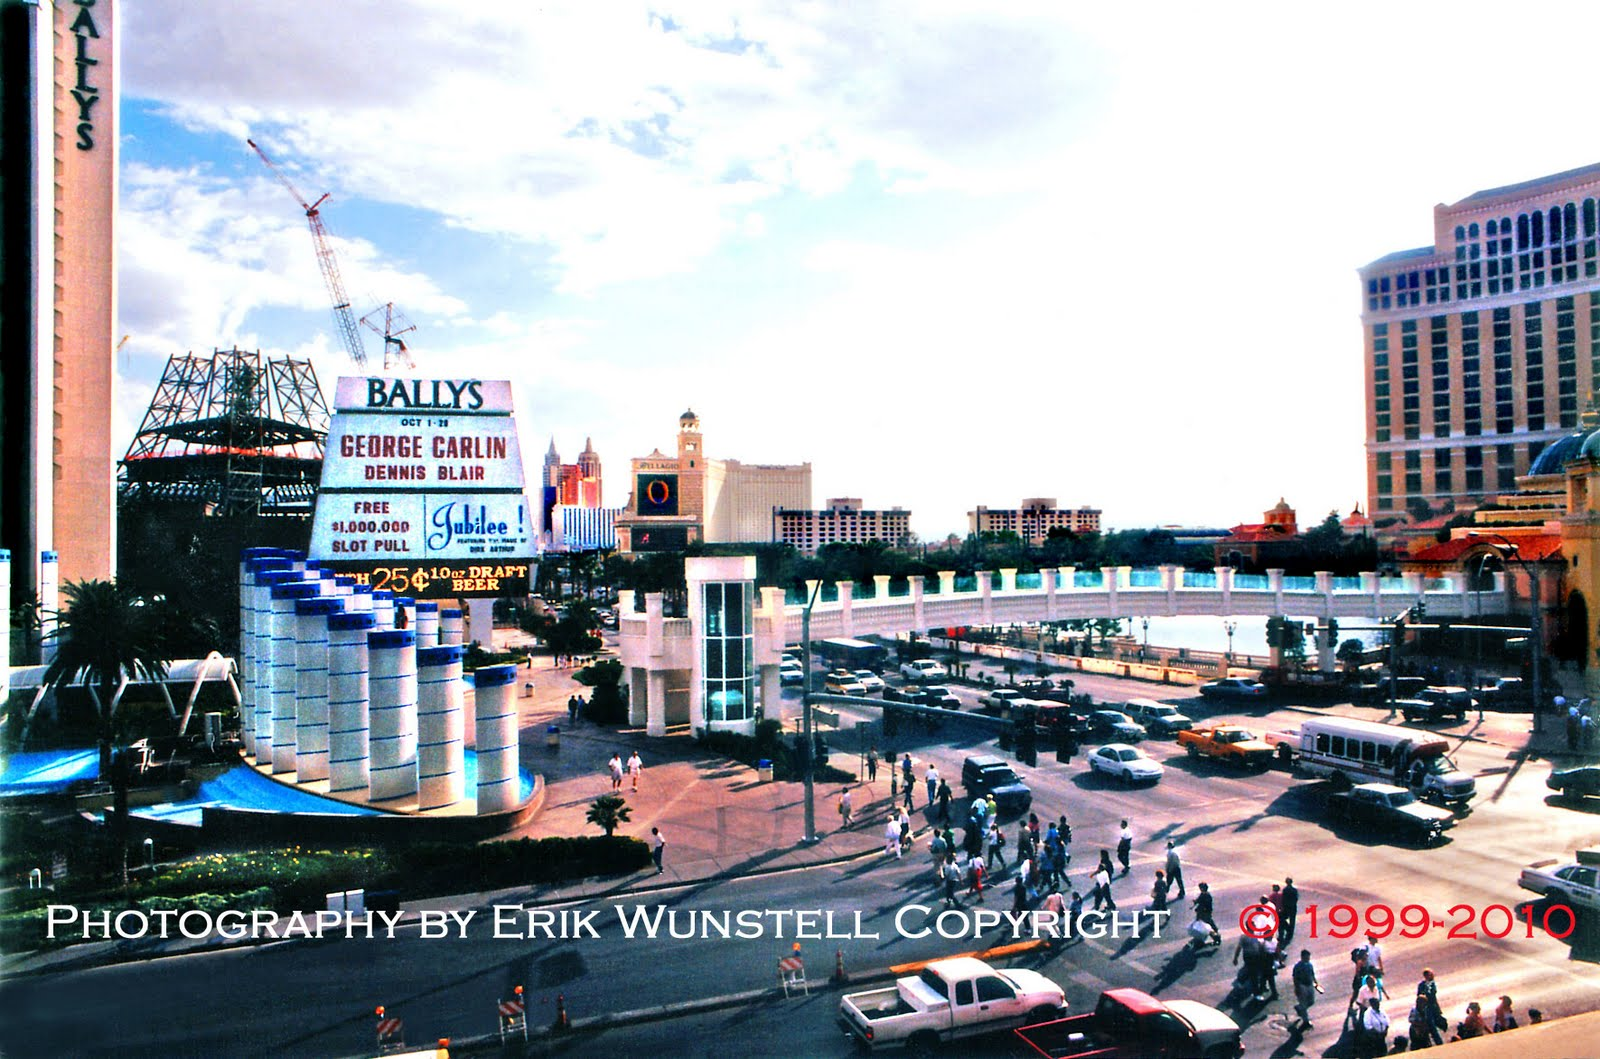 With you Current las vegas strip construction theme, will